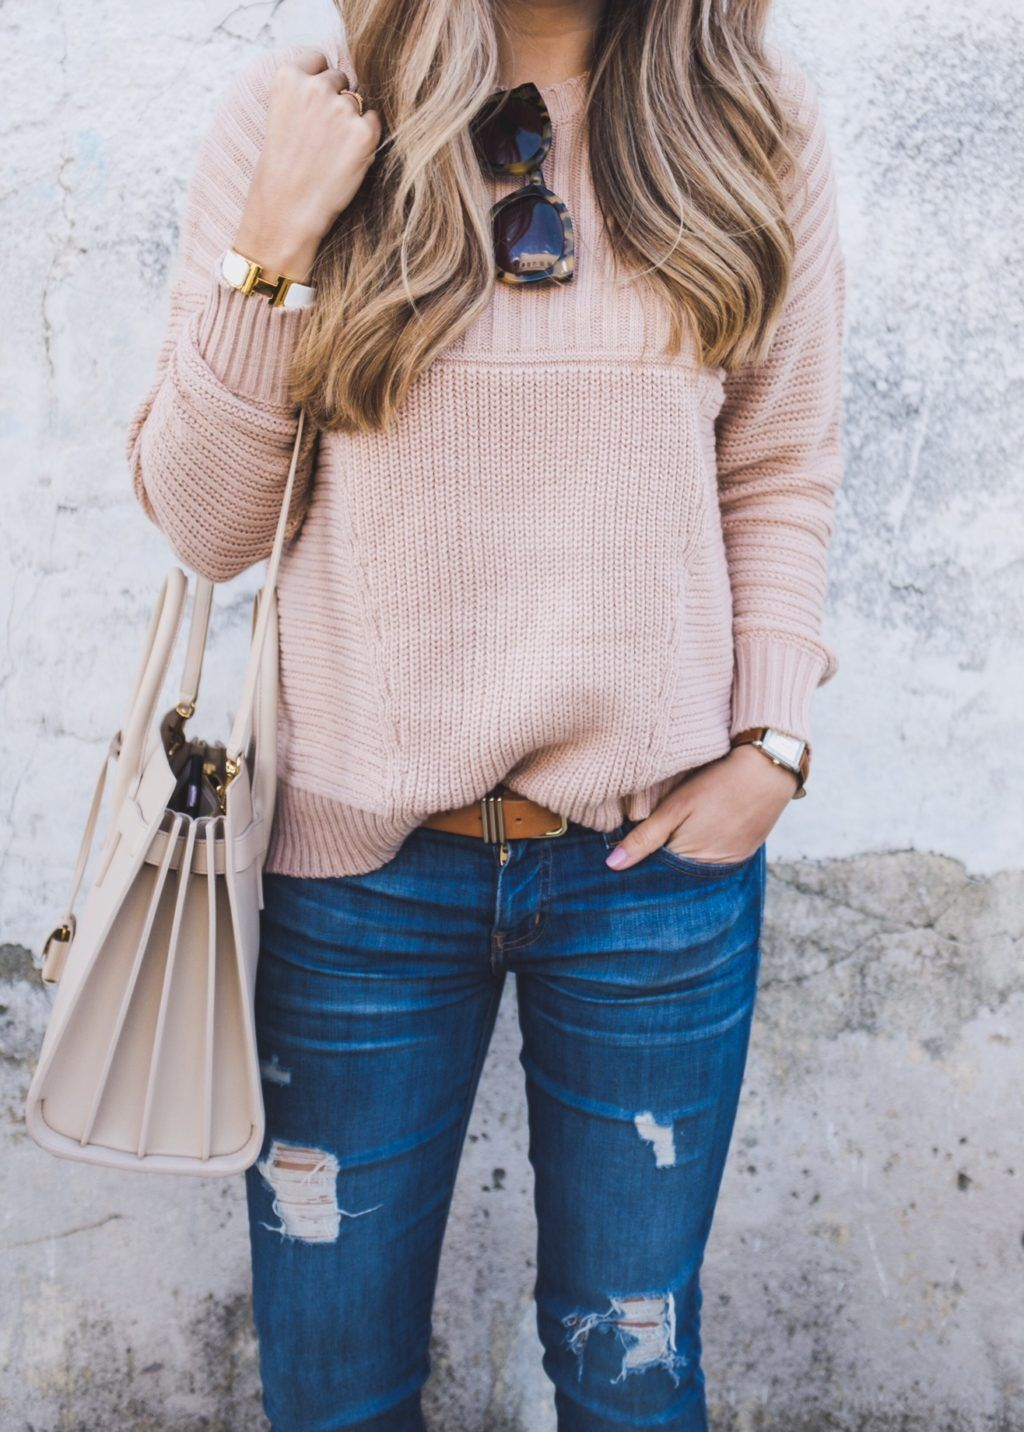 Photo of Cozy Sweaters under $50 | The Teacher Diva: a Dallas Fashion Blog featuring Beauty & Lifestyle